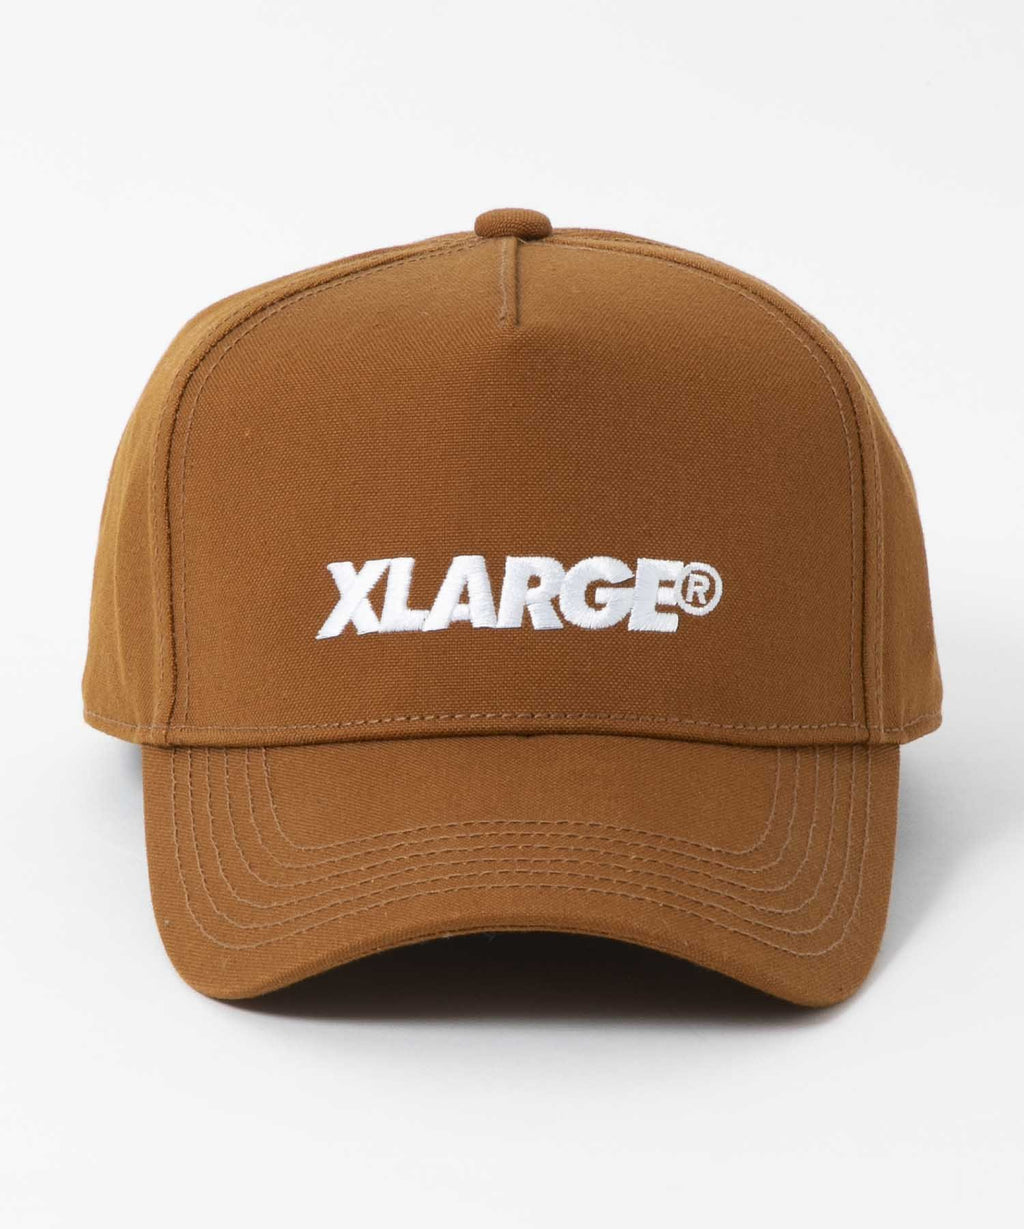 EMBROIDERY STANDARD LOGO TRUCKER CAP - BROWN